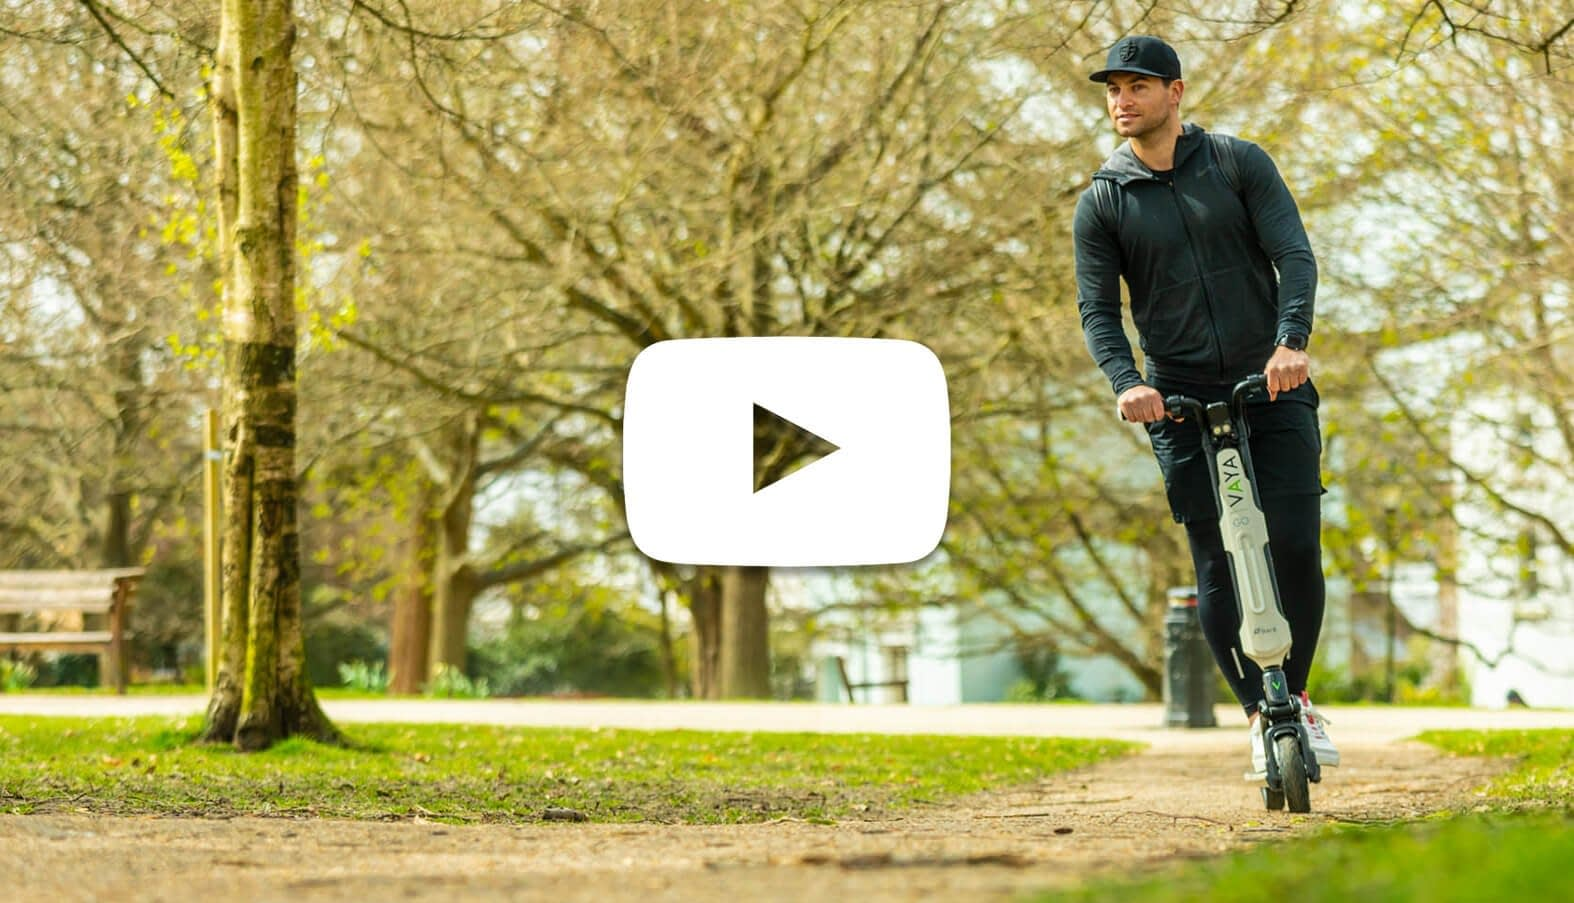 young man riding scooter through park in London